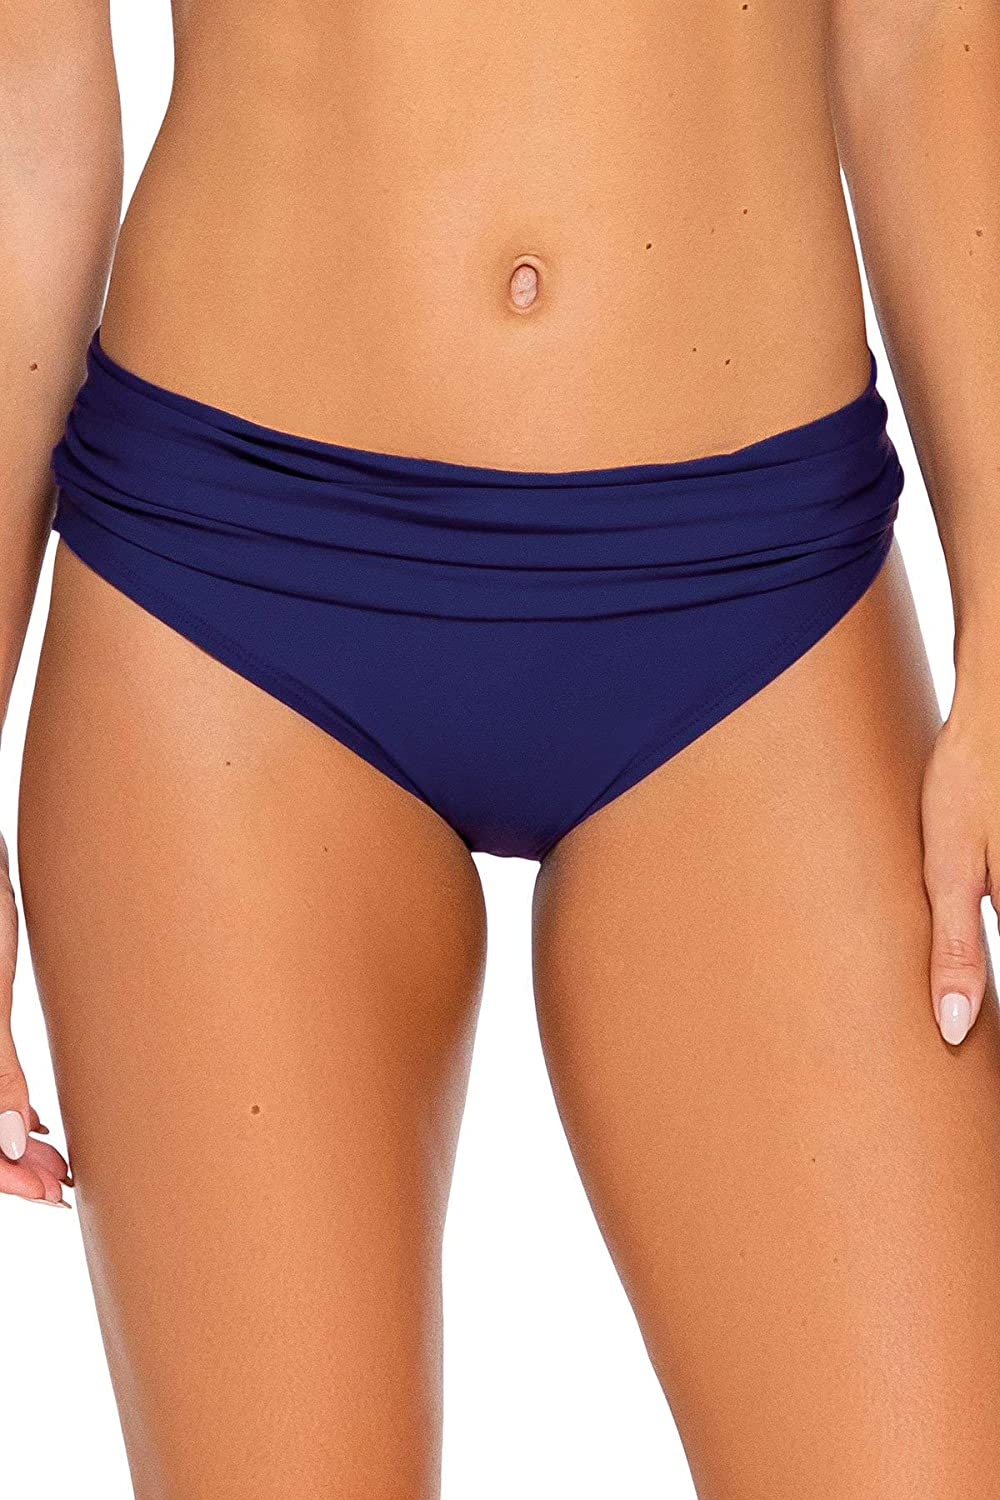 Sunsets Women's Unforgettable Bottoms Al sold out. High quality new